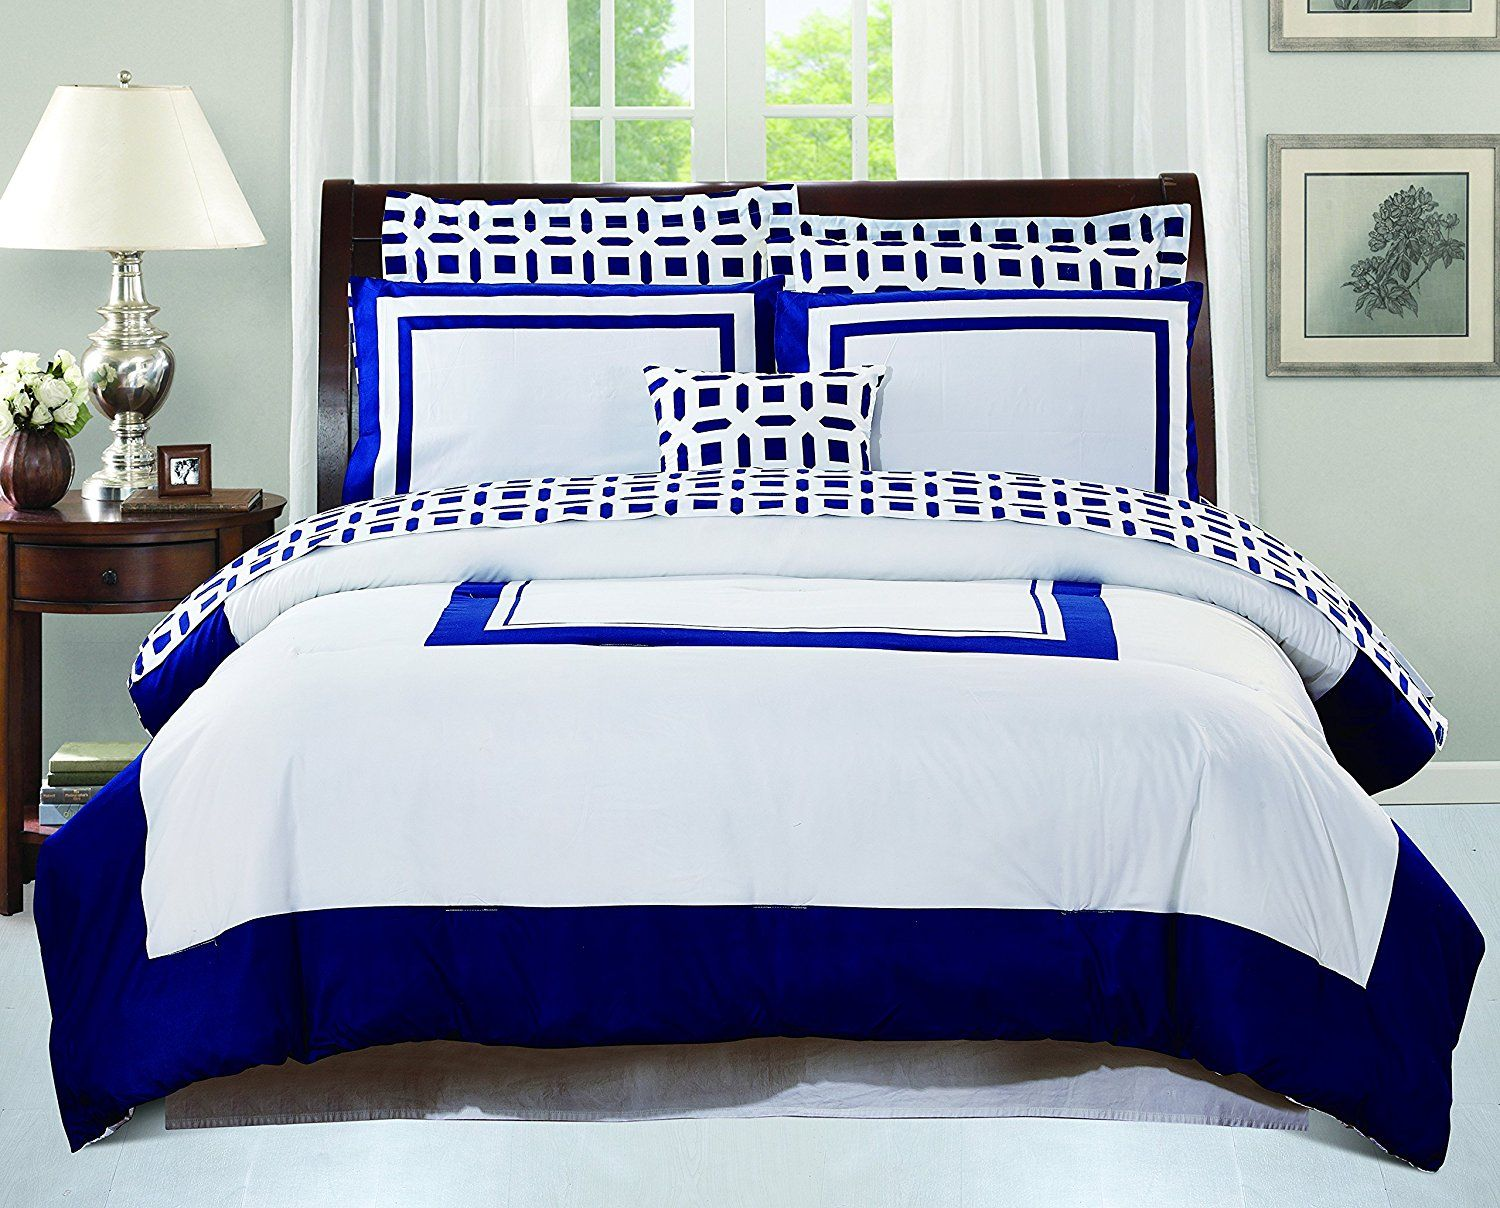 Amazon.com: Utopia Bedding Queen Bedroom Set, Blue (8